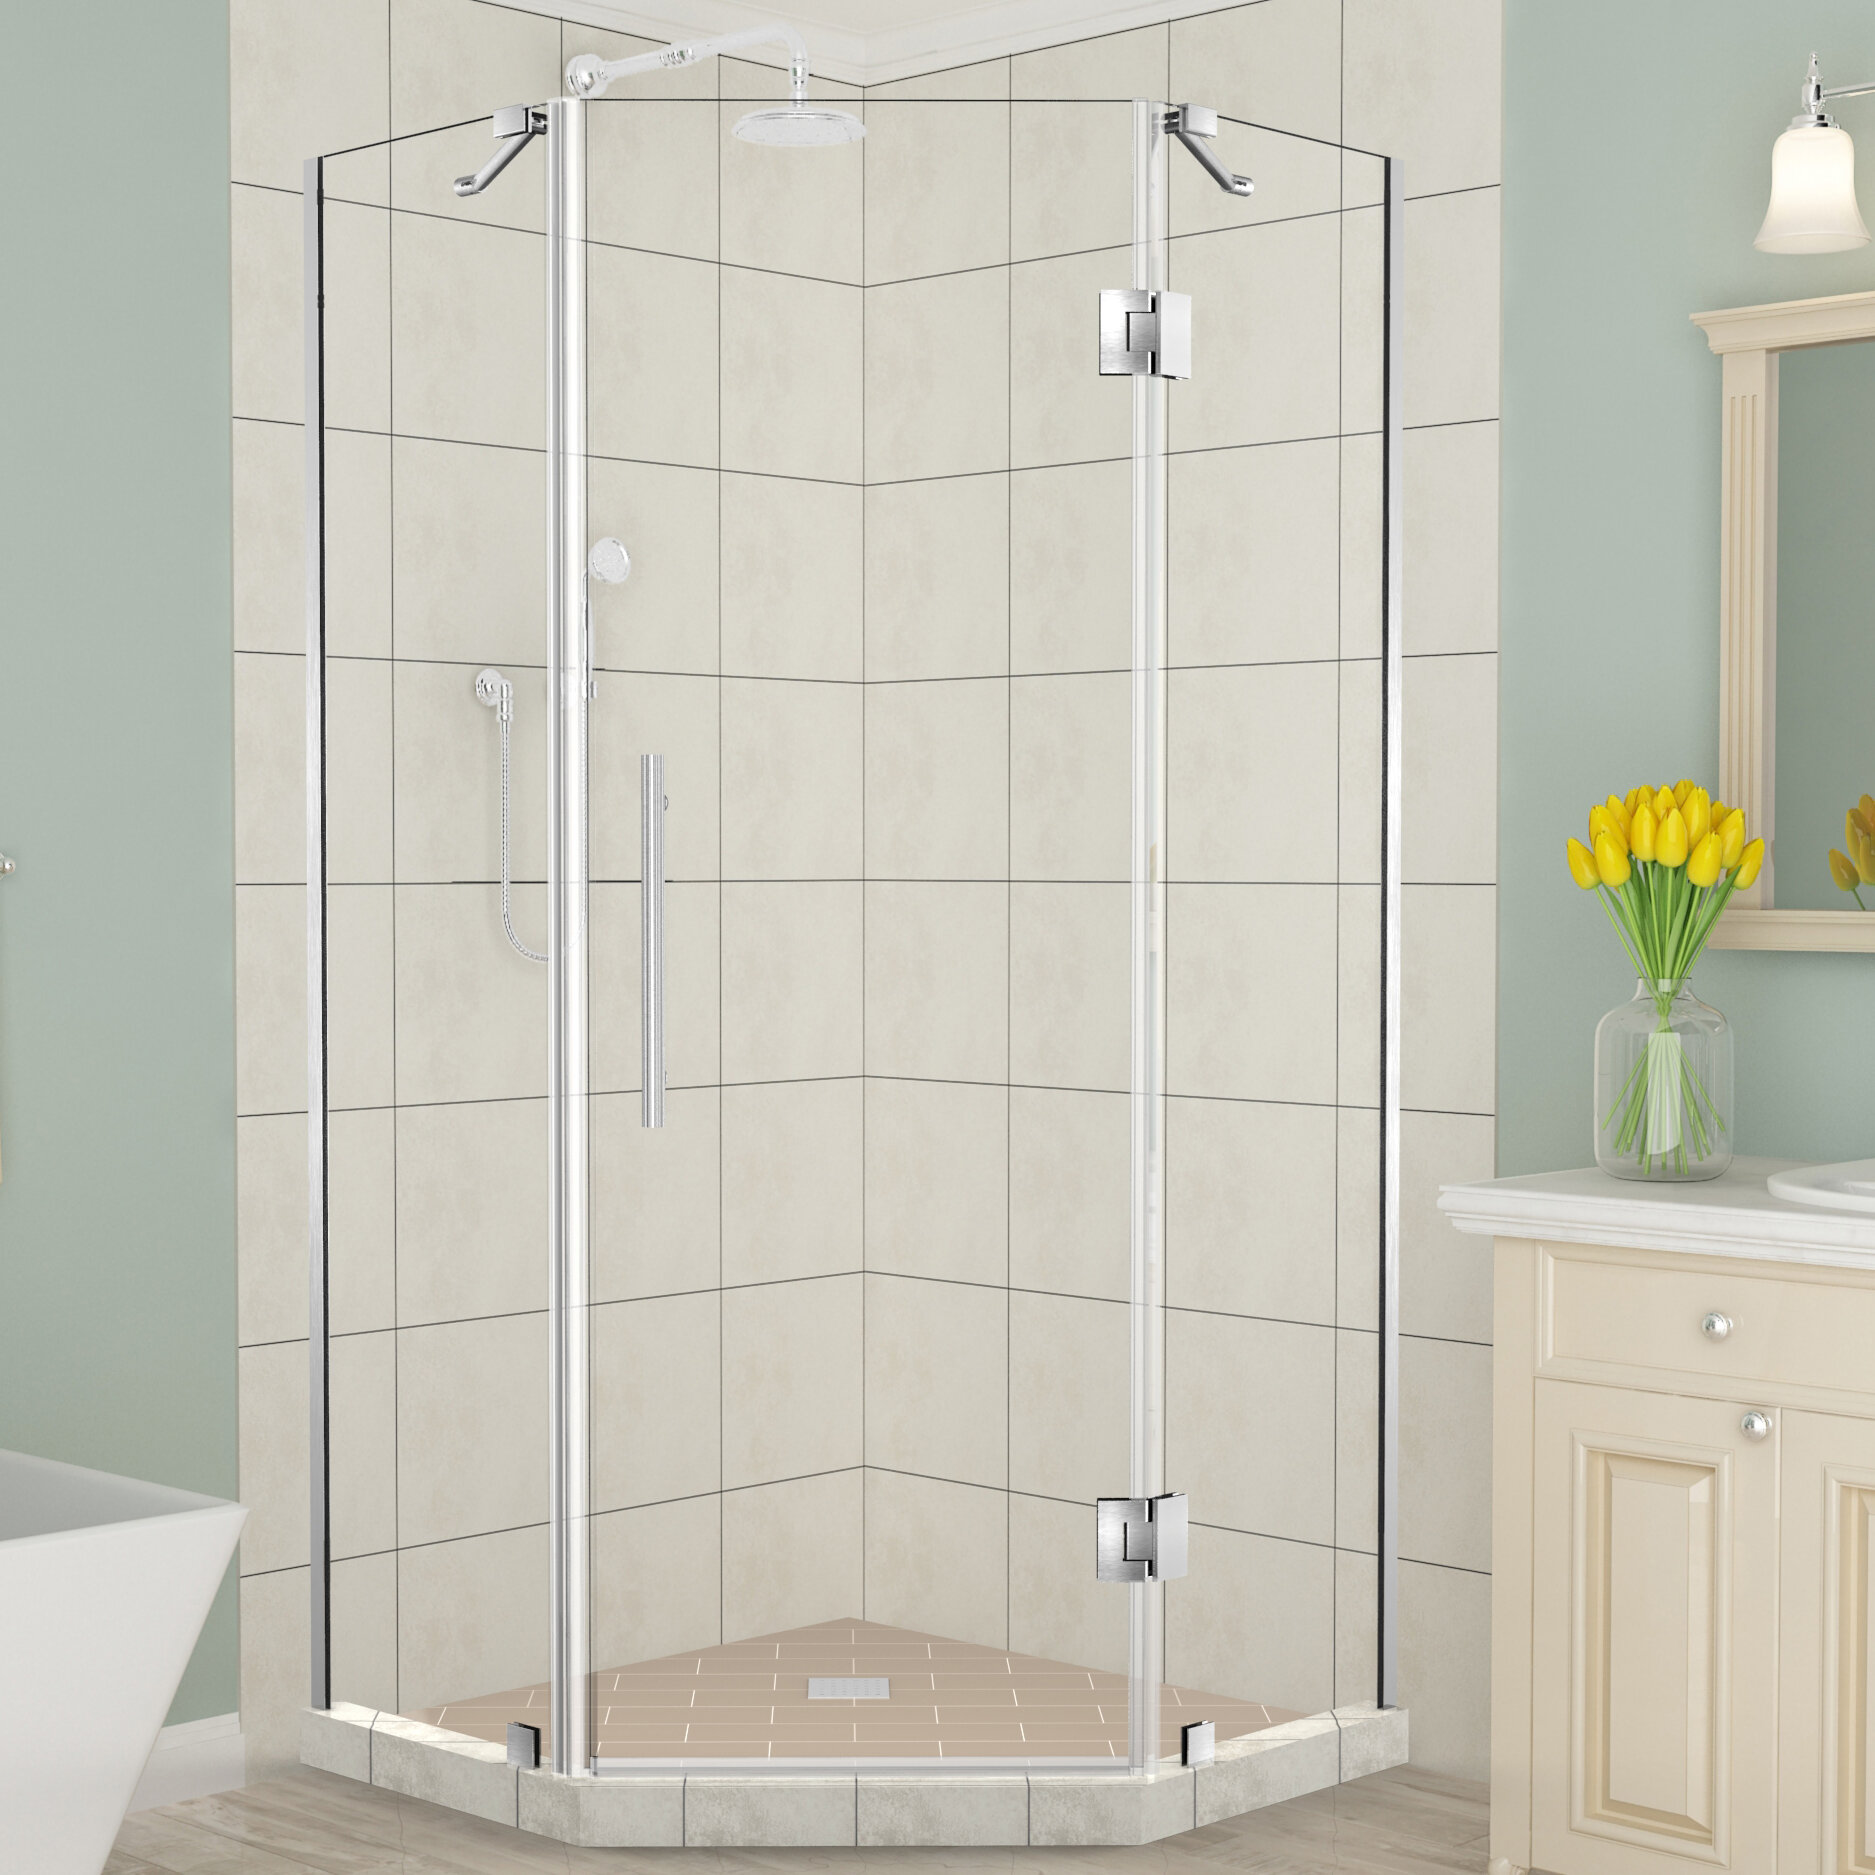 Merrick 38 X 72 Neo Angle Hinged Shower Enclosure